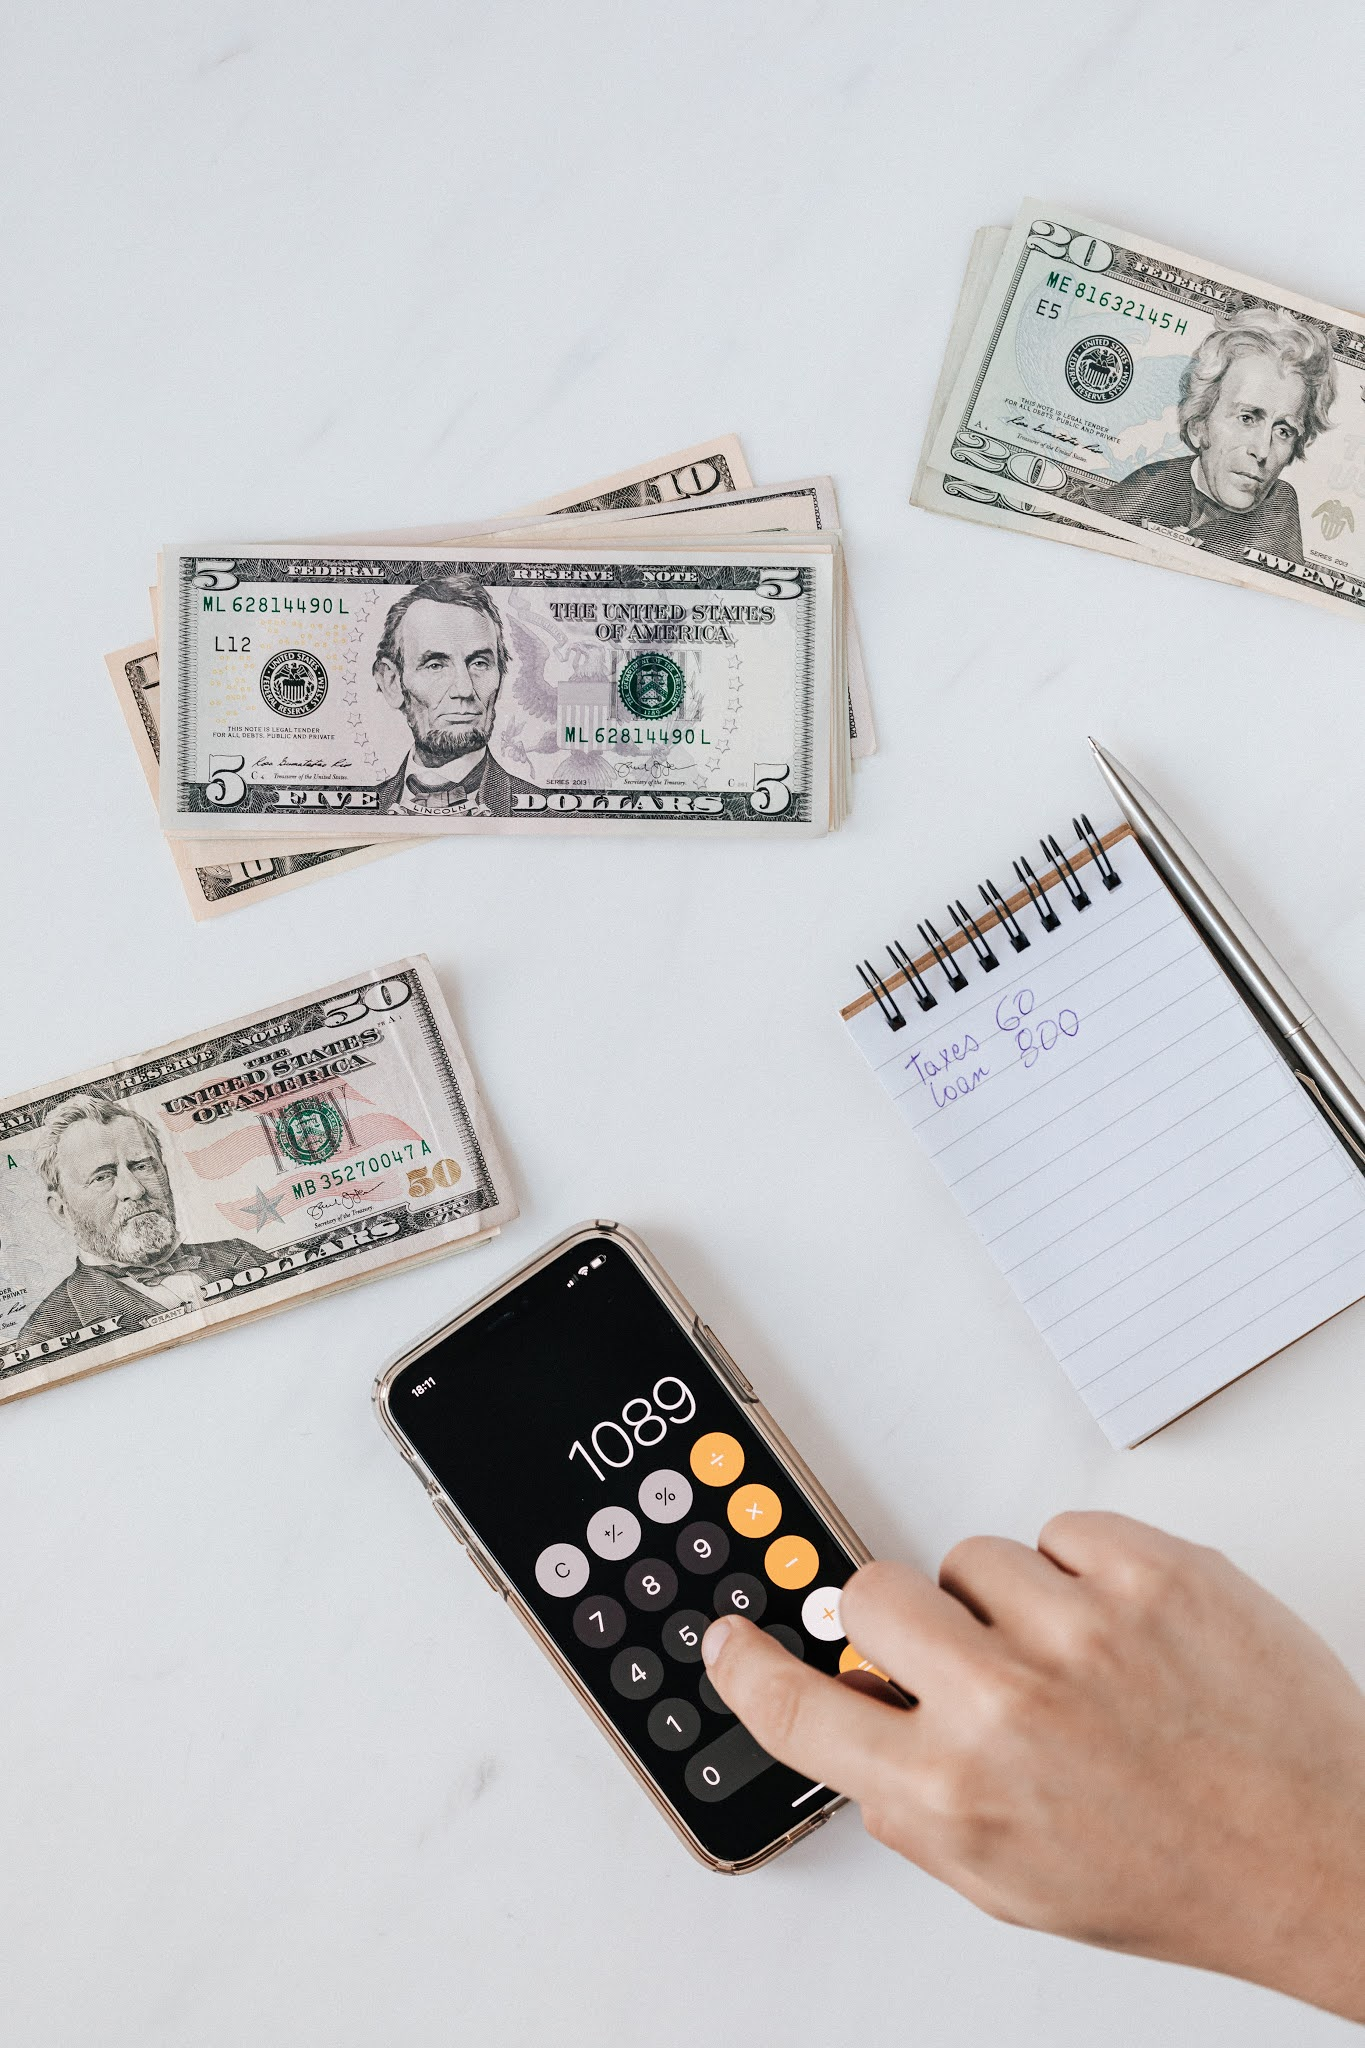 4 Things to Consider When Considering Debt Consolidation